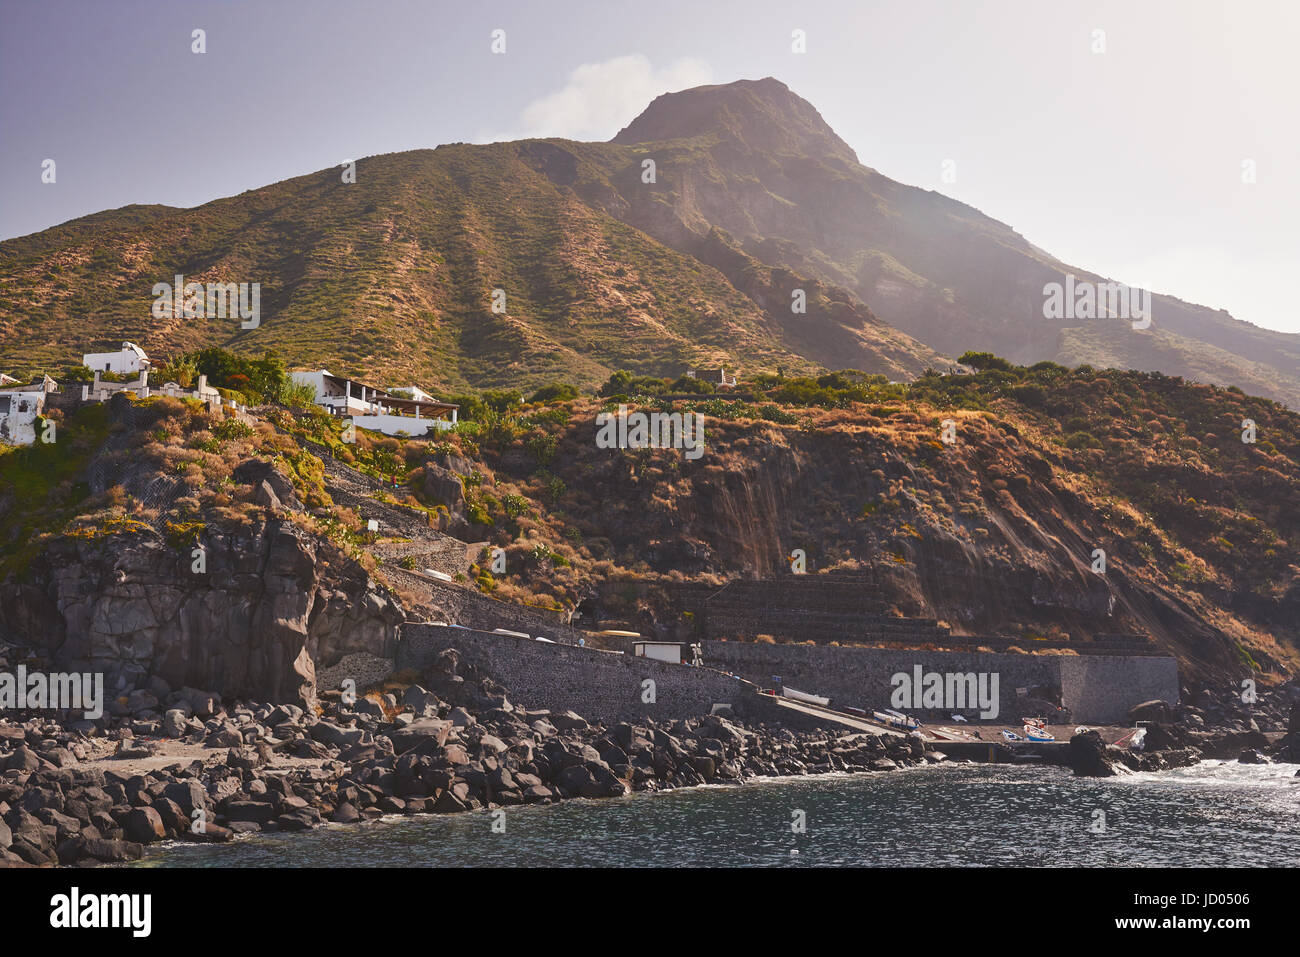 Aeolian Islands - Ginostra - Sicily - Harbor, Volcano Stromboli in the background - Stock Image